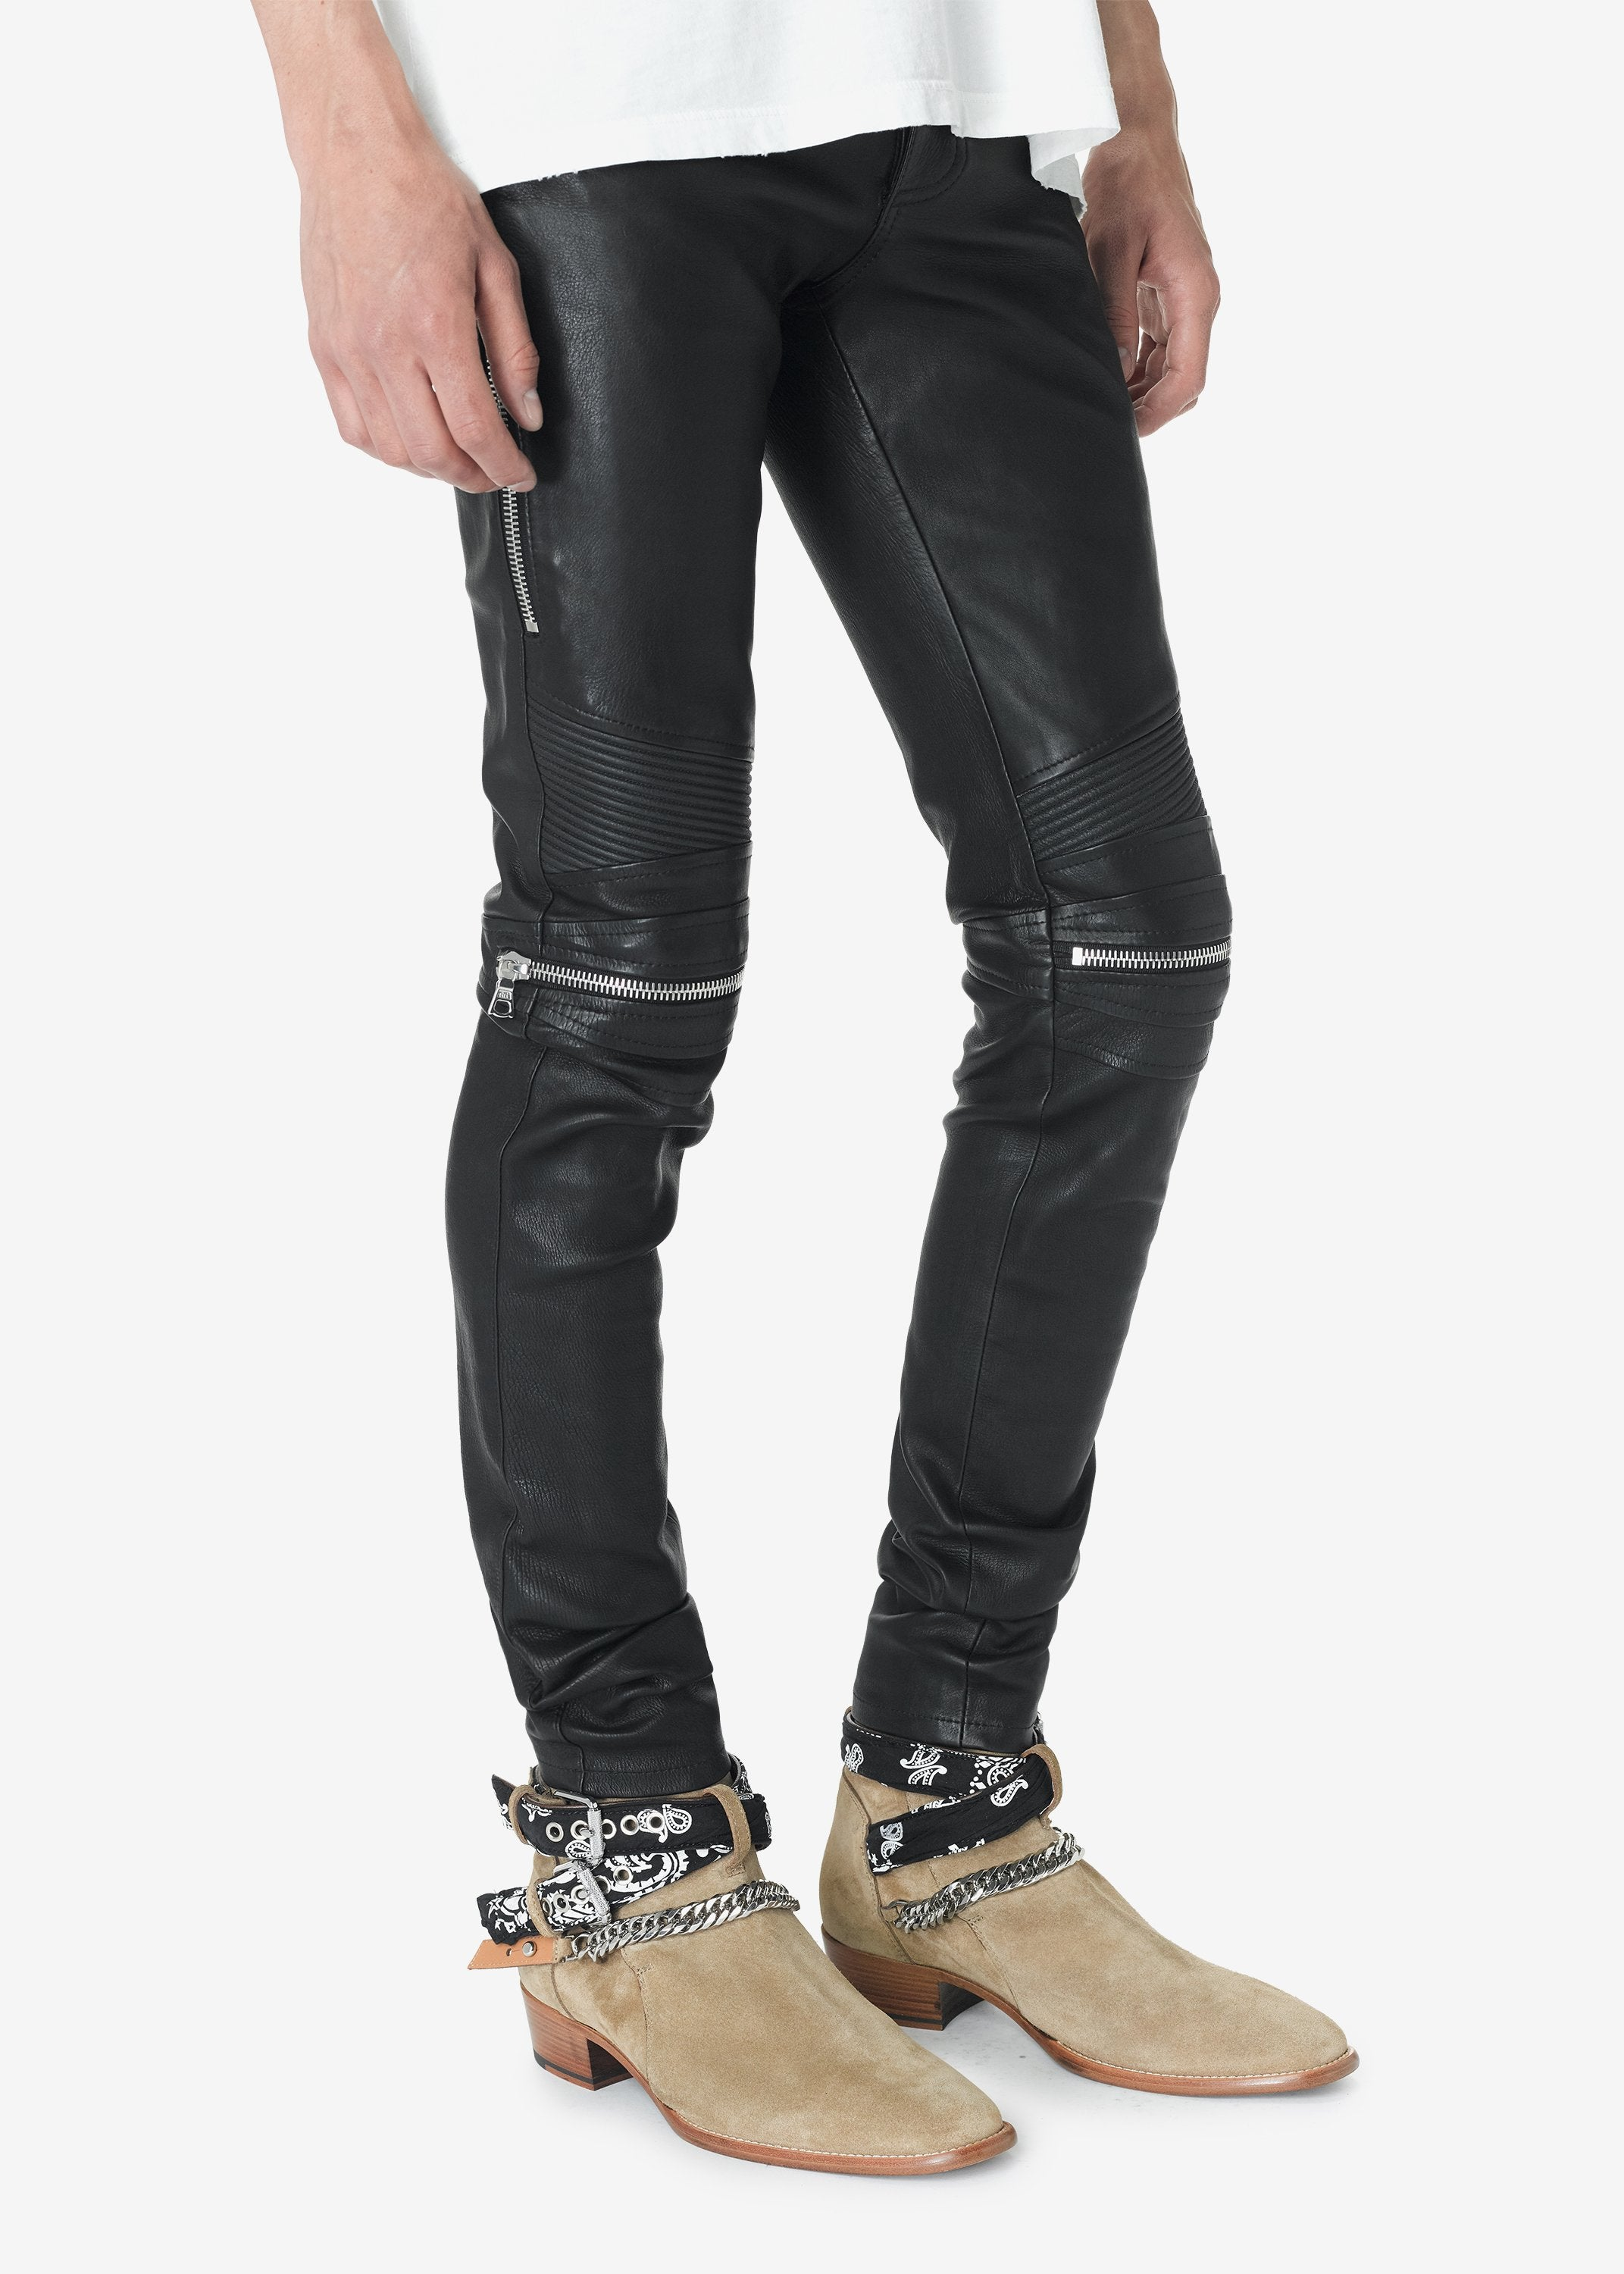 mx2-leather-pants-black-silver-image-7